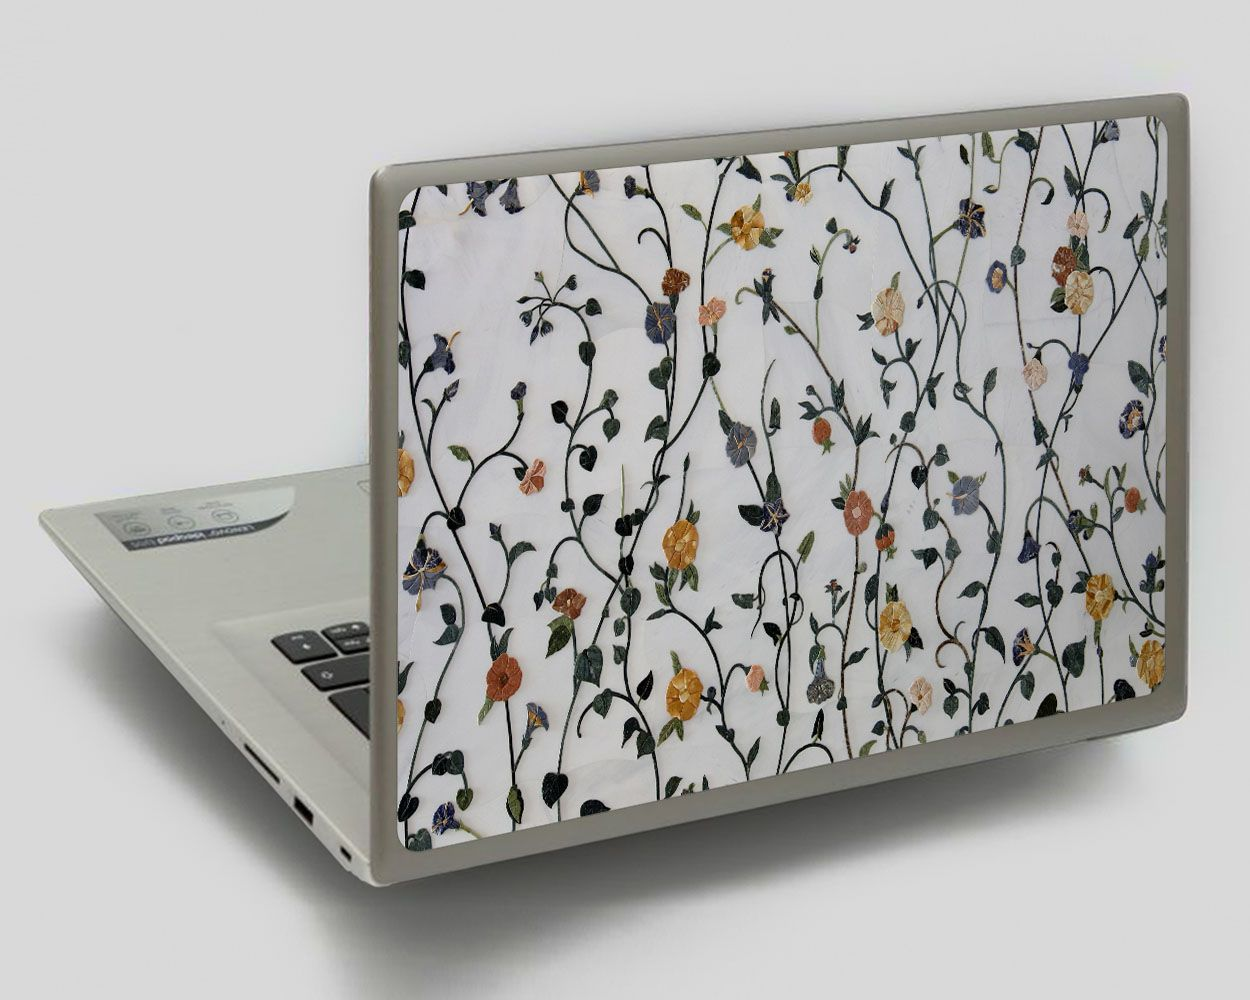 Wildflowers Print Laptop Flower Decal Universal Laptop Skin Chromebook 11 Cover Hp Pavilion 14 Inch Dell Xps 15 Skin Lenovo Dec Chromebook 11 Chromebook Laptop